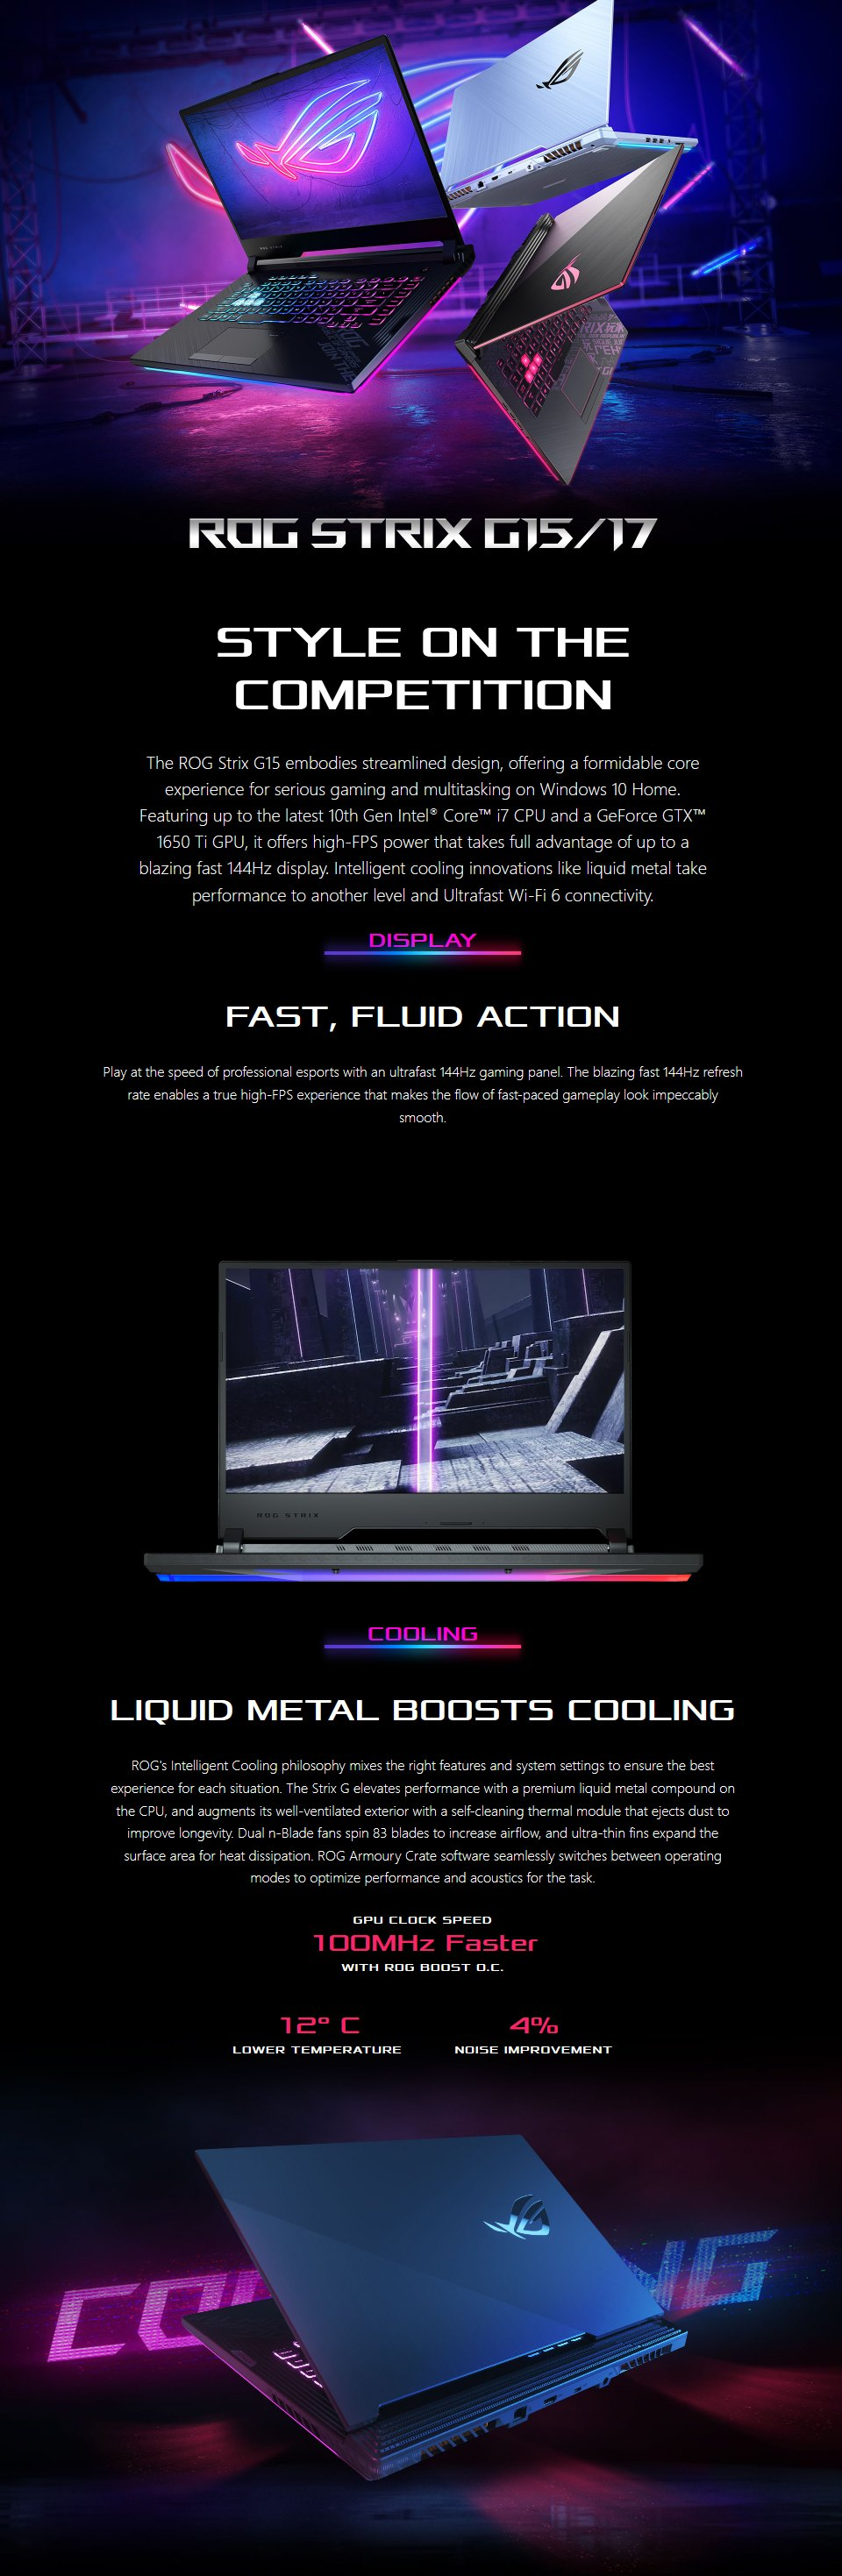 ASUS ROG Strix G15 i7 GTX 1650 Ti 15.6in Laptop features